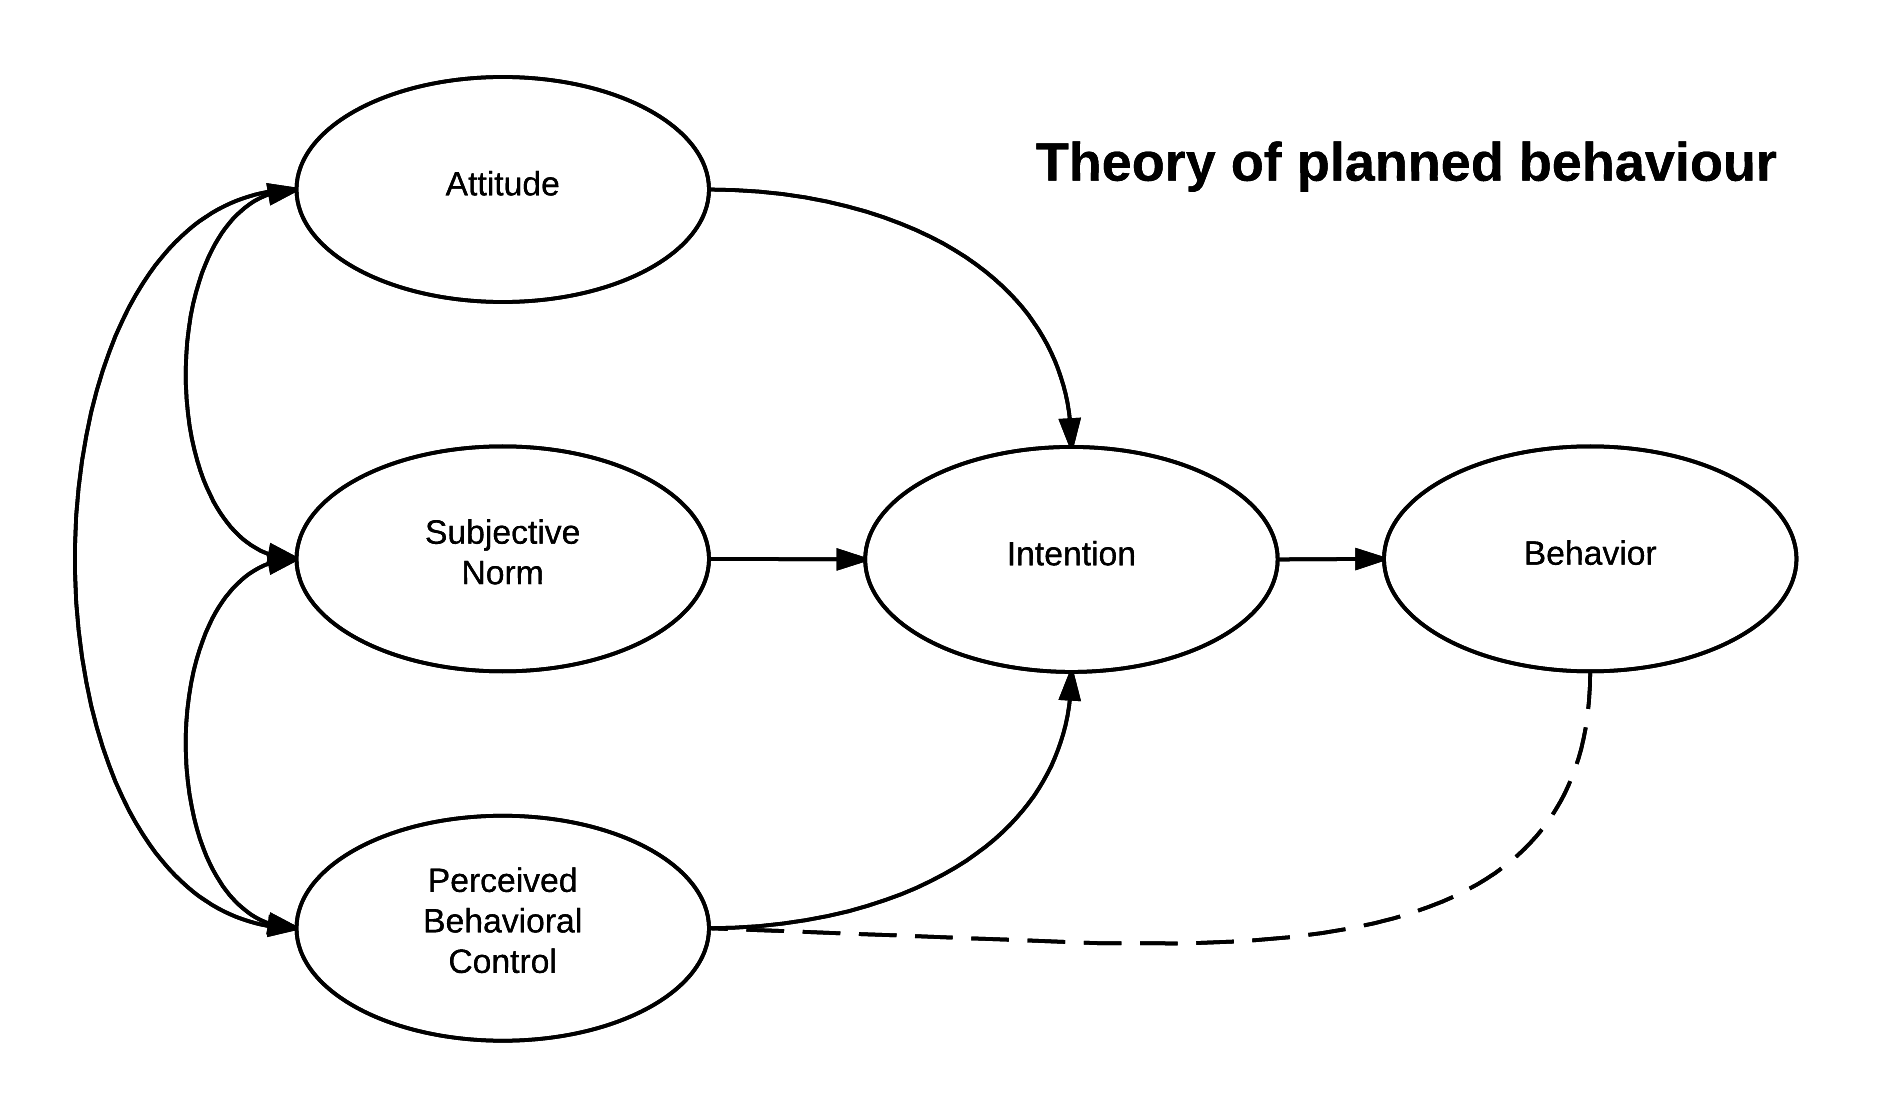 diagram of the theory of planned behavior with attitude, subjective norm, and perceived behavioral control leading to intention and eventually behavior